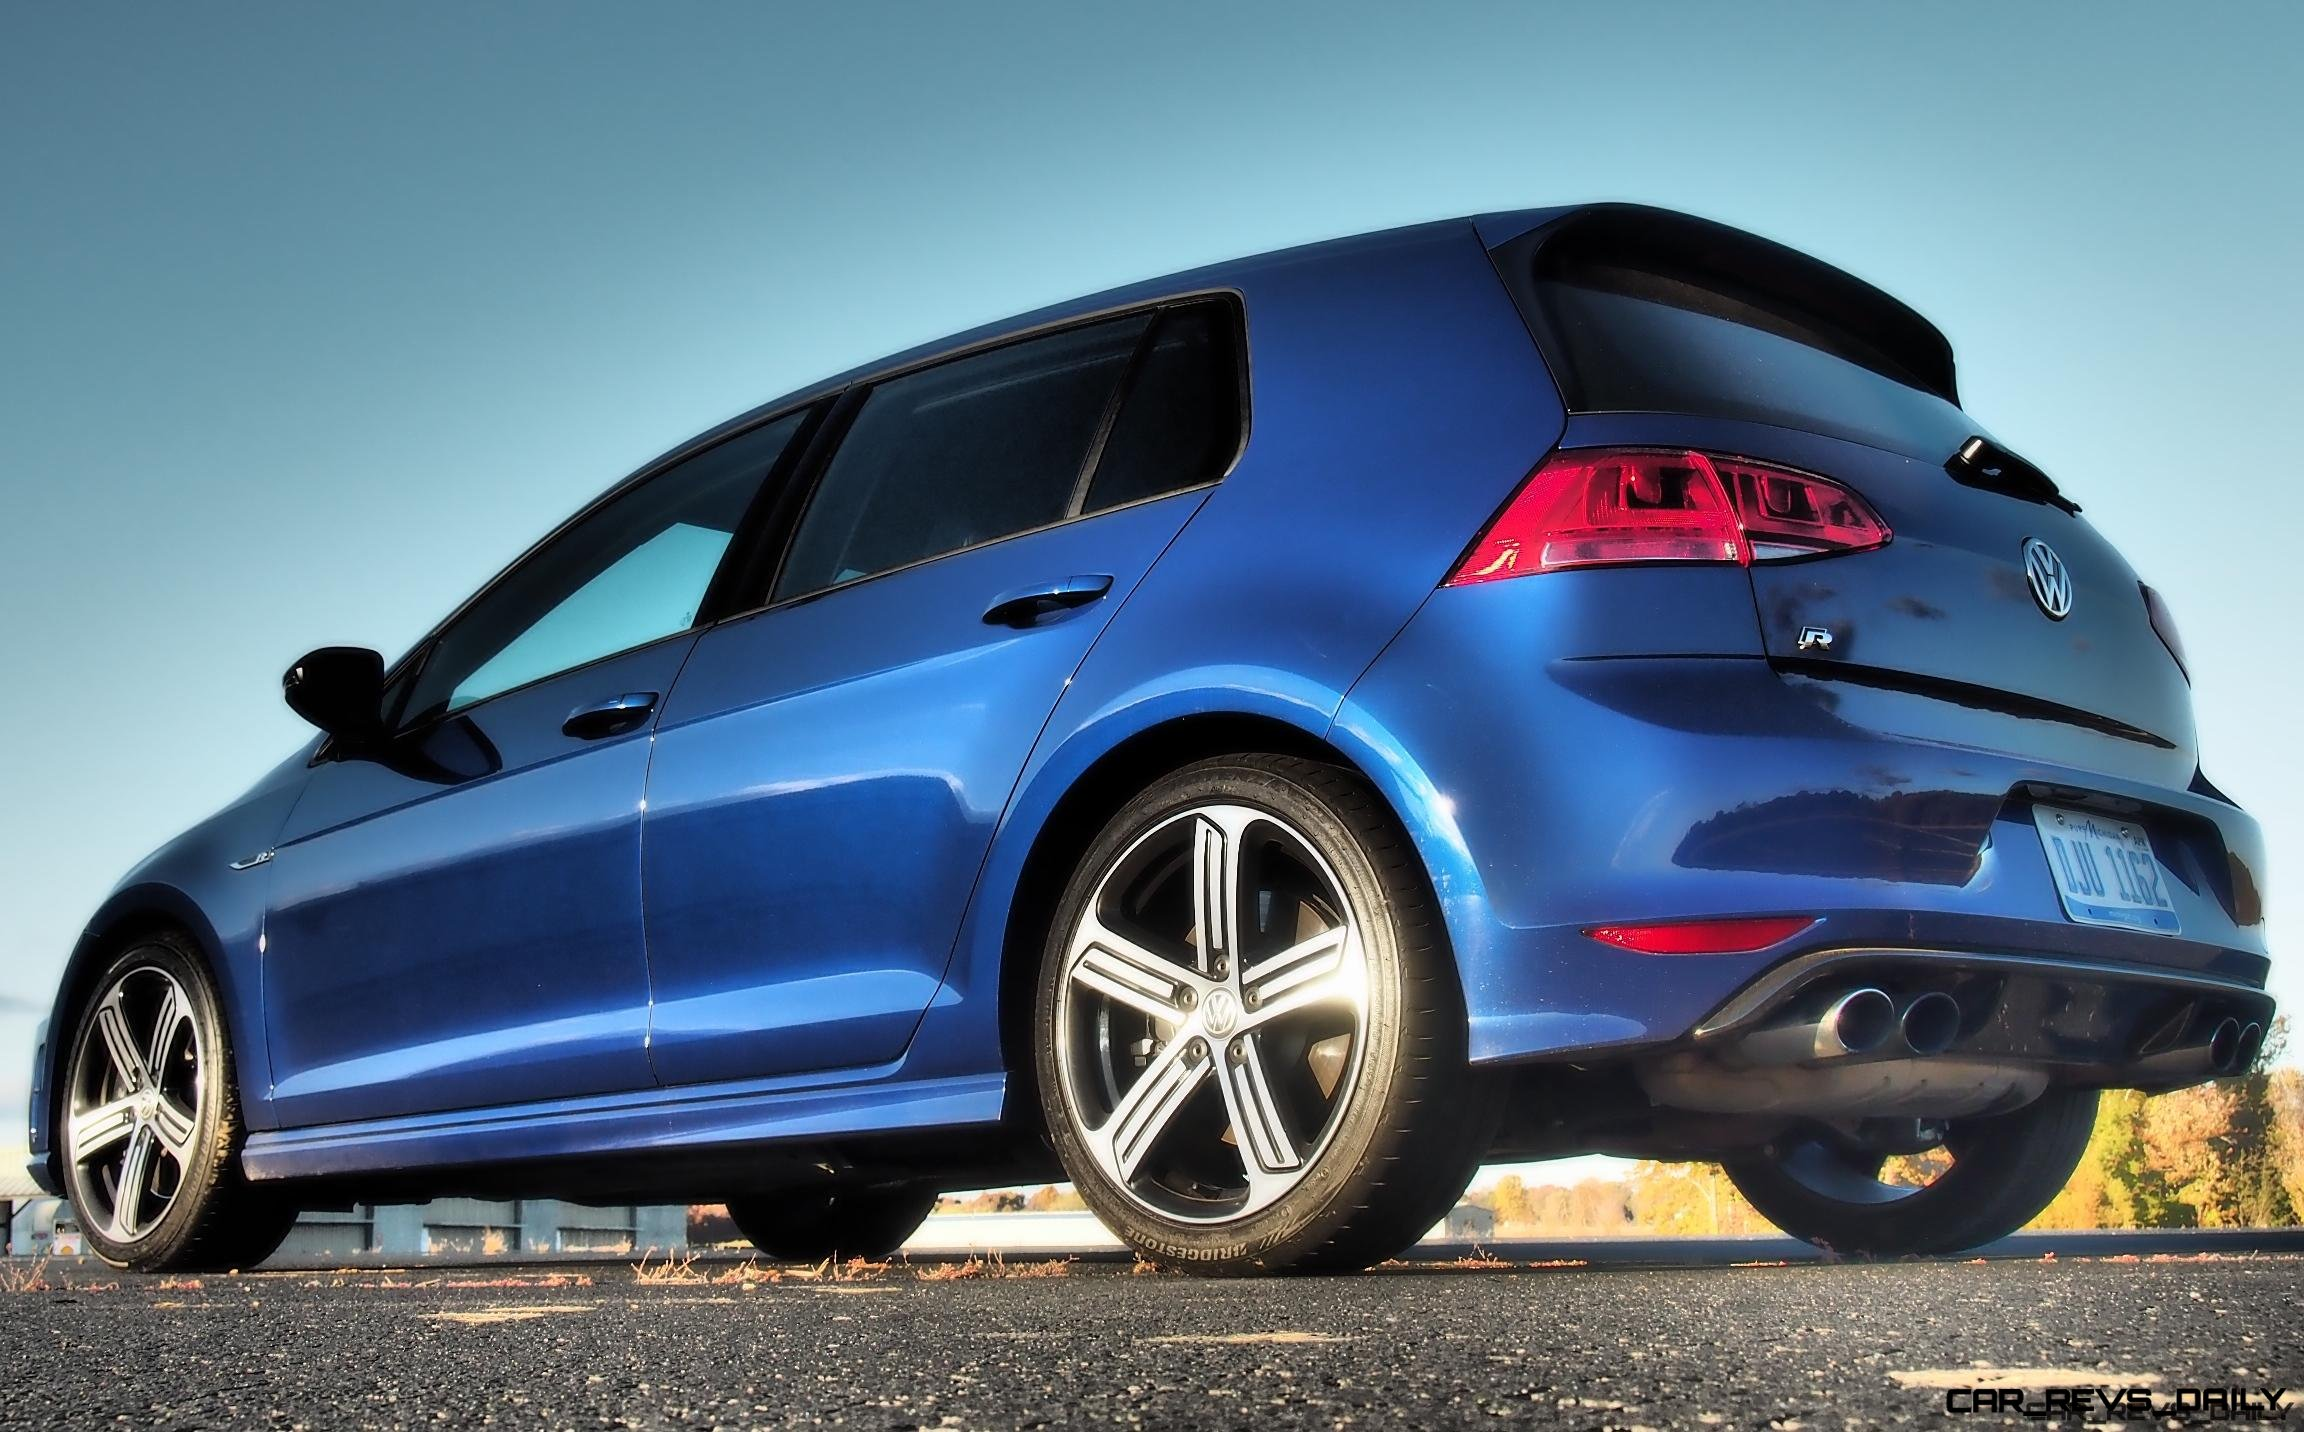 2016 VW Golf R Lapiz Blue by Lyndon Johnson 5